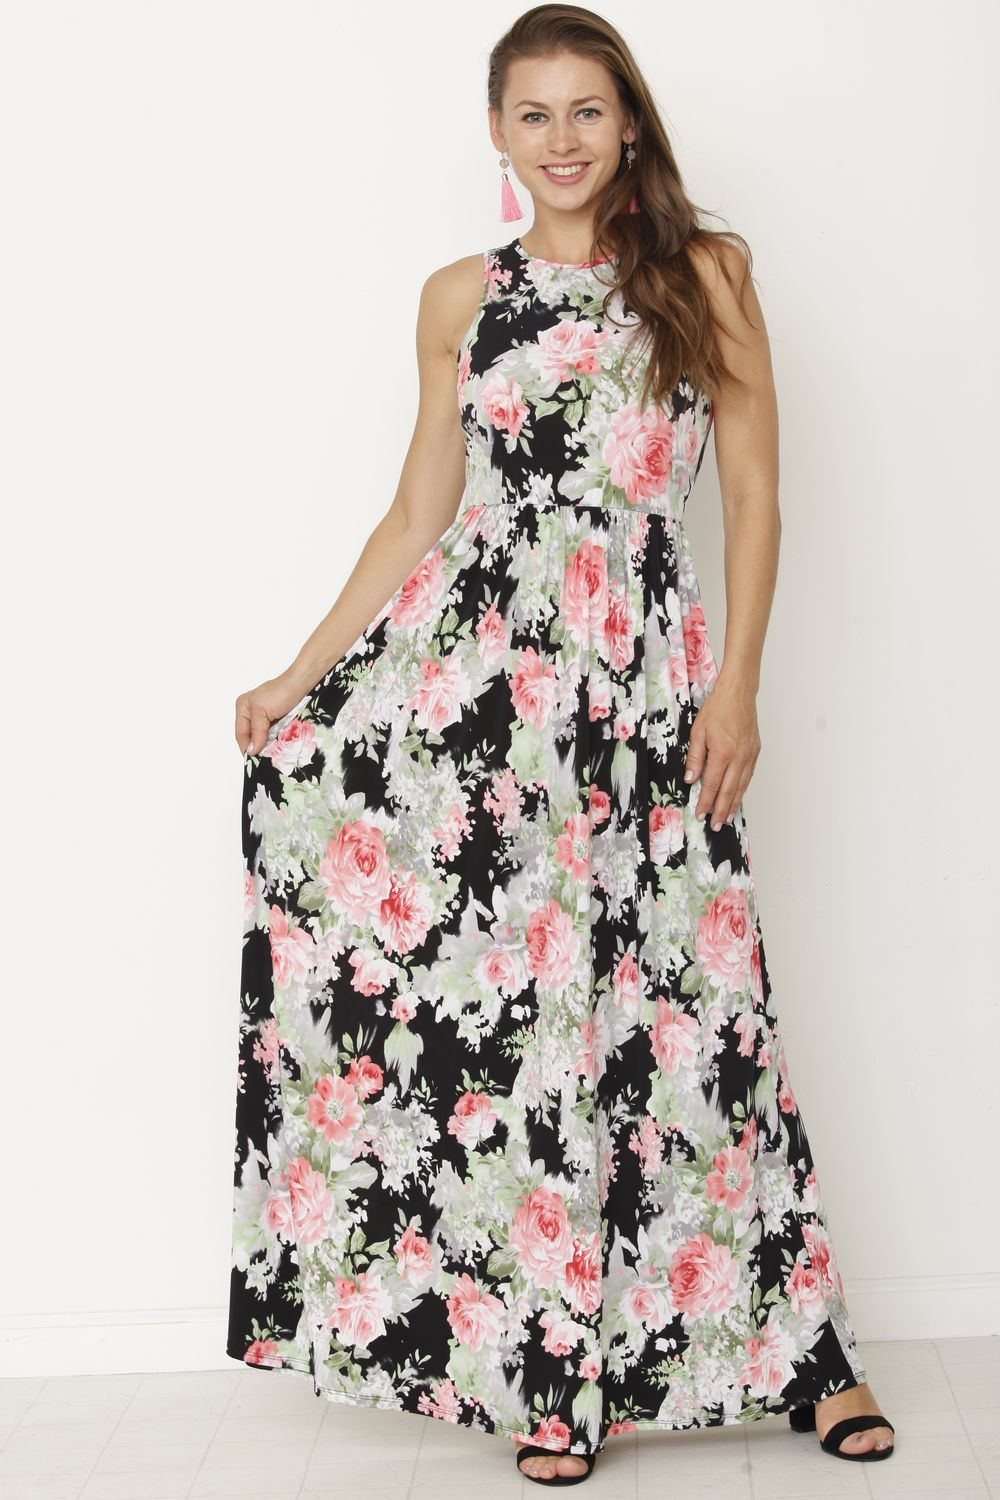 Black & Green Floral Sleeveless Maxi Dress